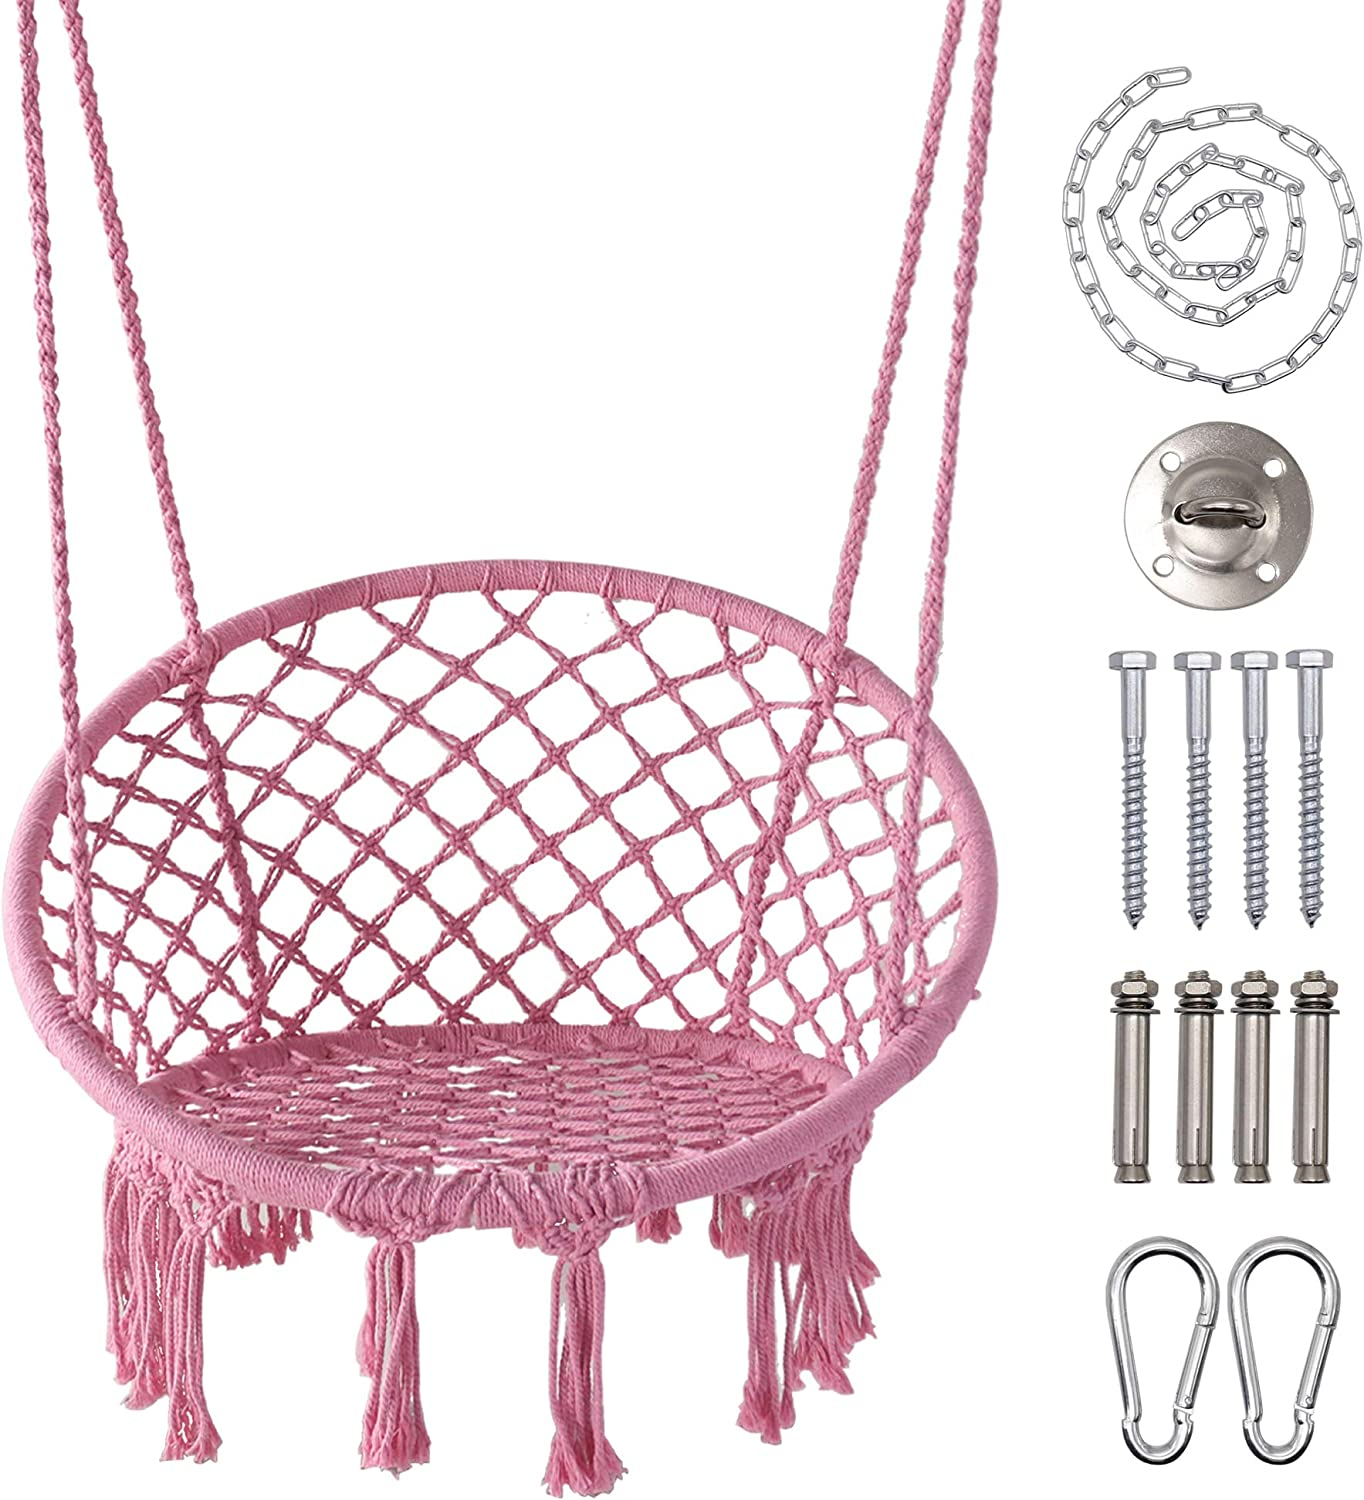 "LAZZO Hammock Chair with Hanging Kit and Chain, Cotton Rope Macrame Swing, 260Pounds Capacity, 20"" Width, for Indoor, Garden, Patio, Yard (Pink)"